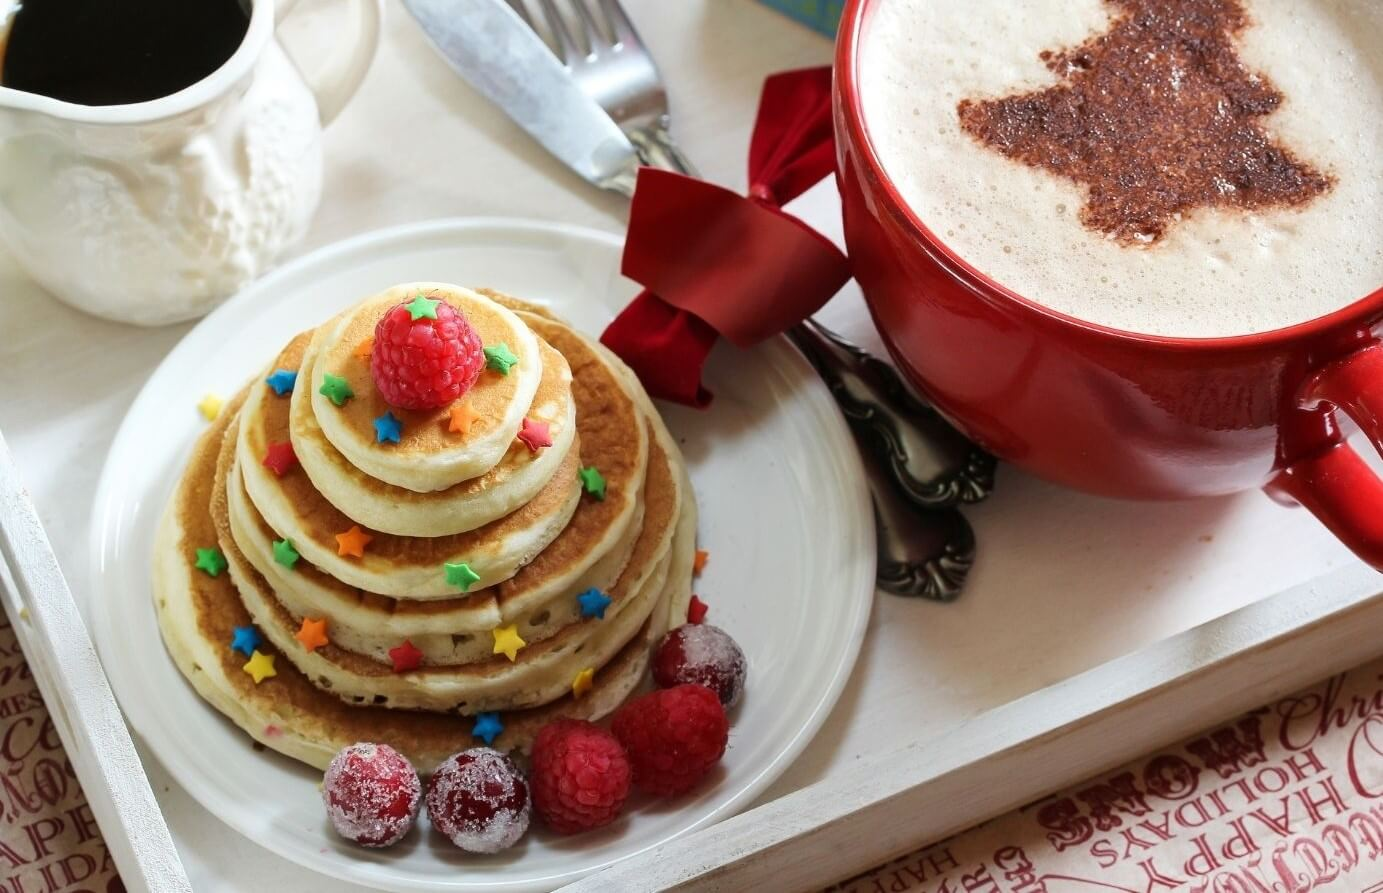 Tray with Pancakes & Coffee With Cocoa Christmas Tree on top